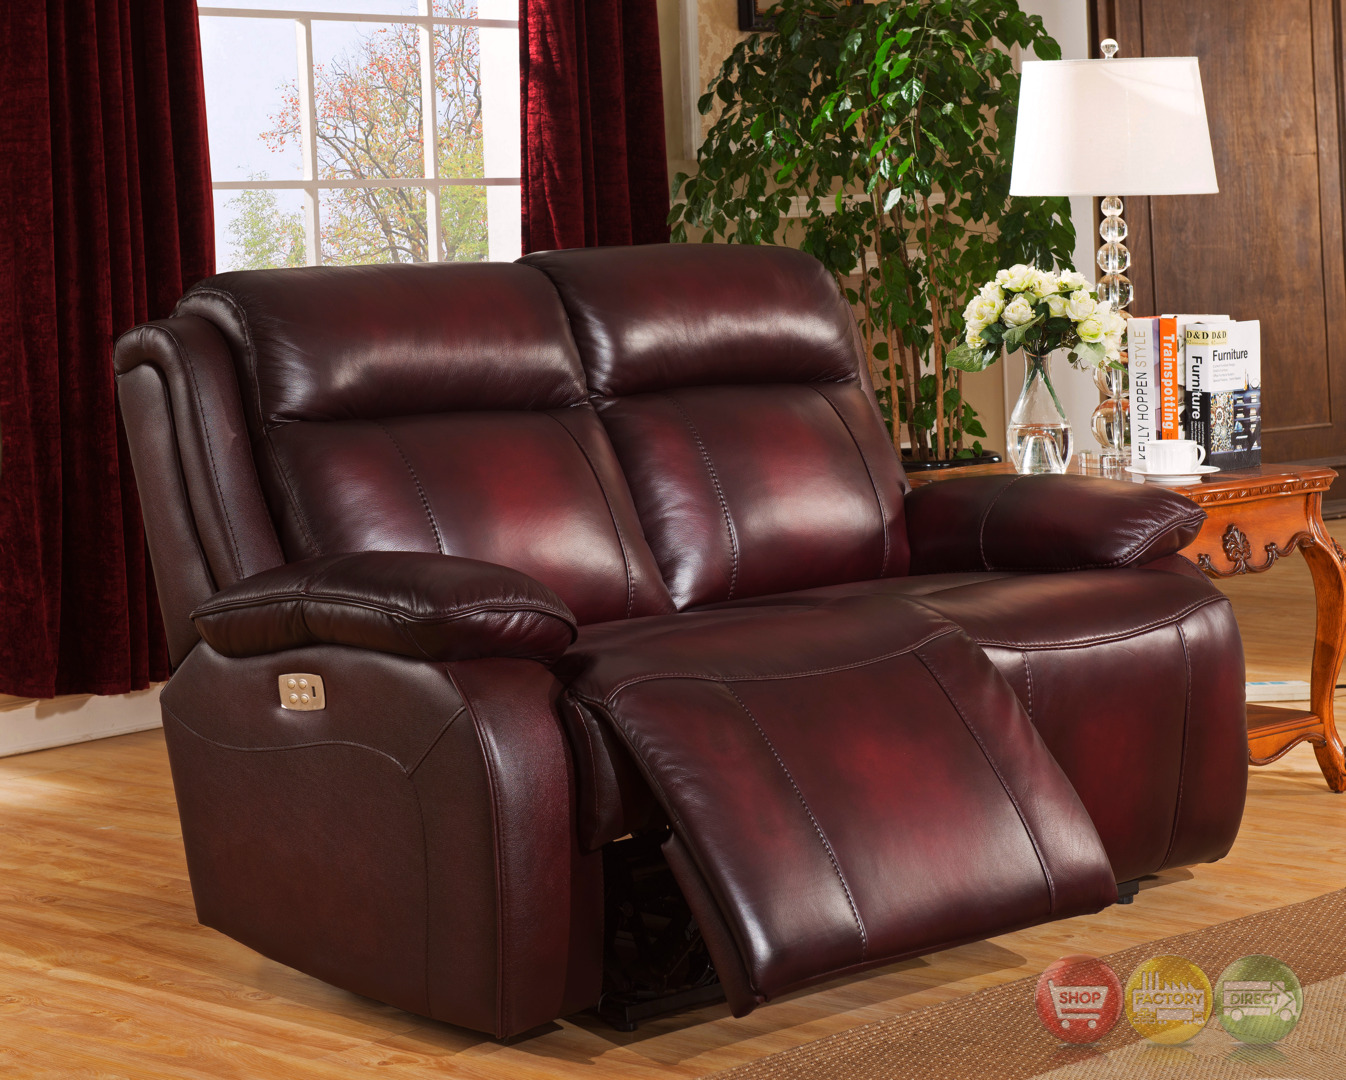 genuine leather power reclining sofa craigslist mn faraday recline loveseat in deep red